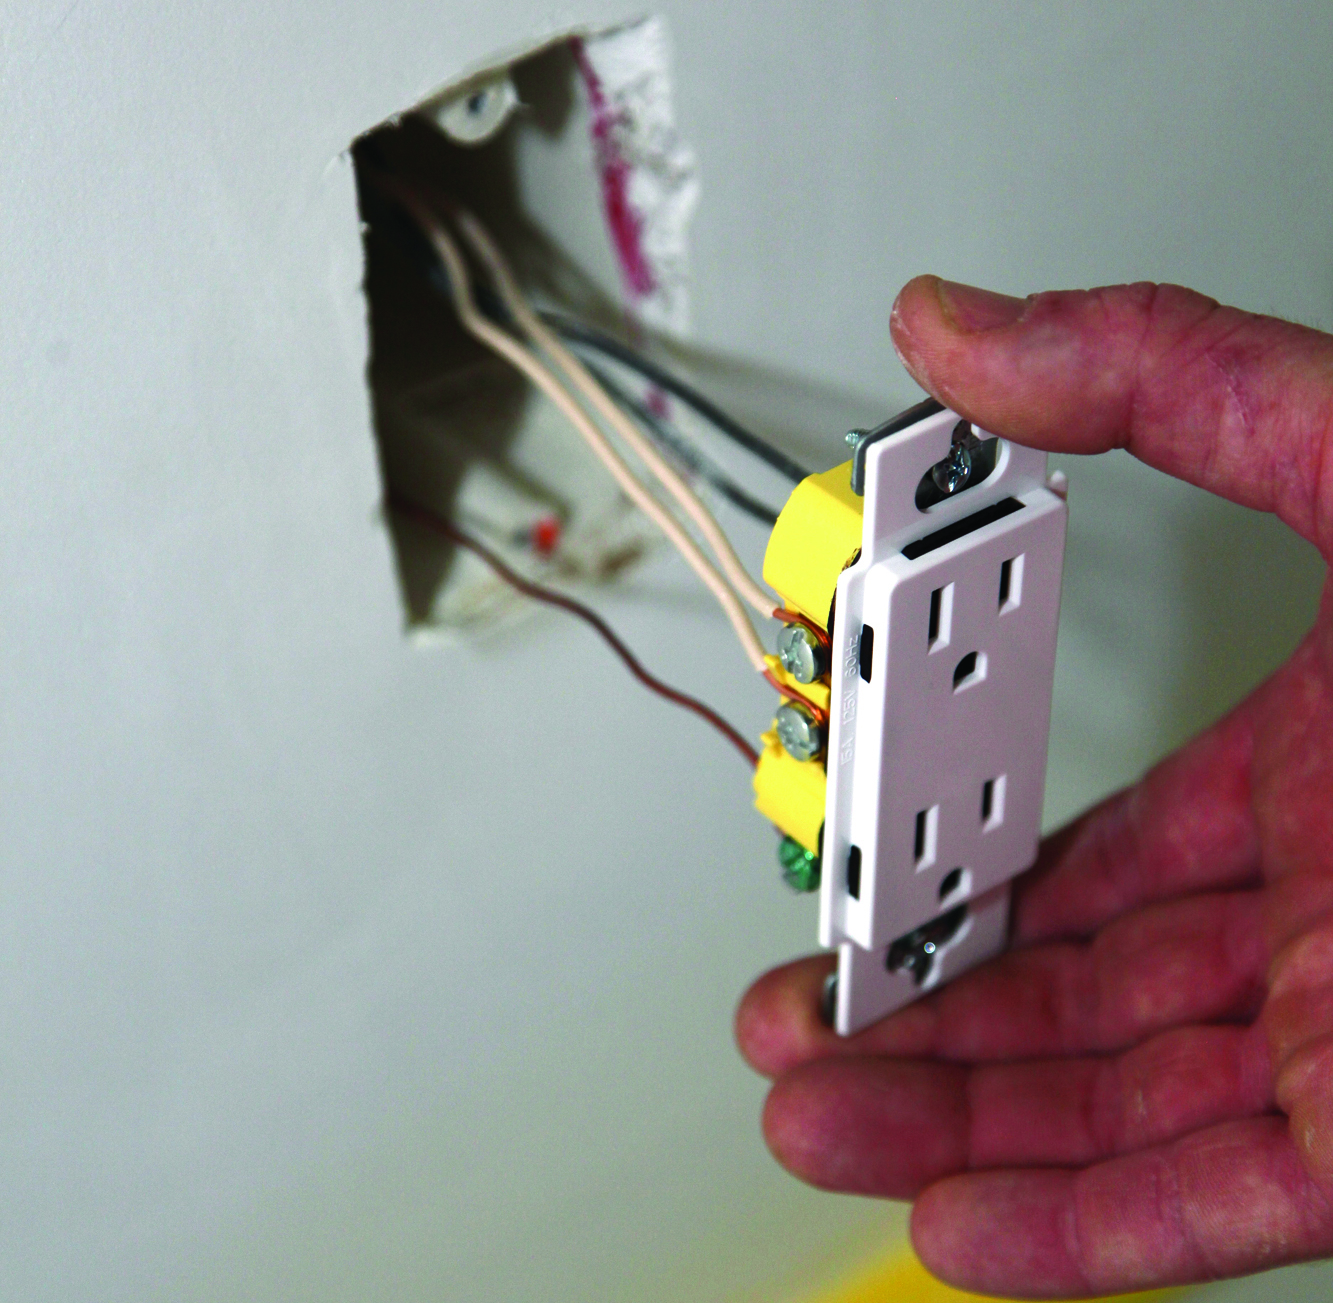 Wiring Receptacles And Switches Jlc Online Electrical Basic On Outlet Codes Cable